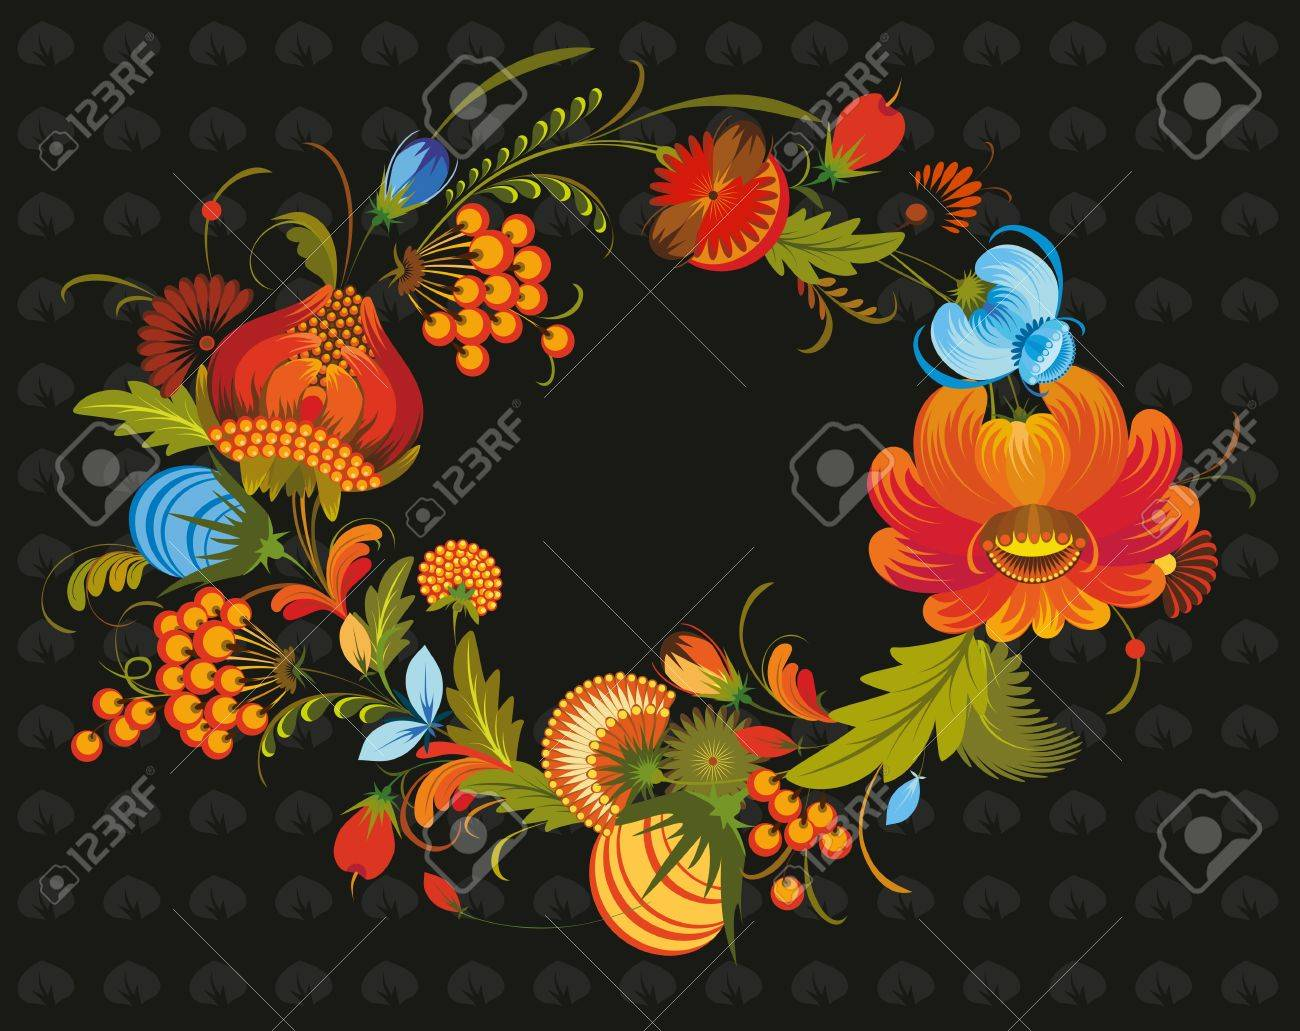 wreath out of bright flowers on a black background in national style Stock Vector - 13383440